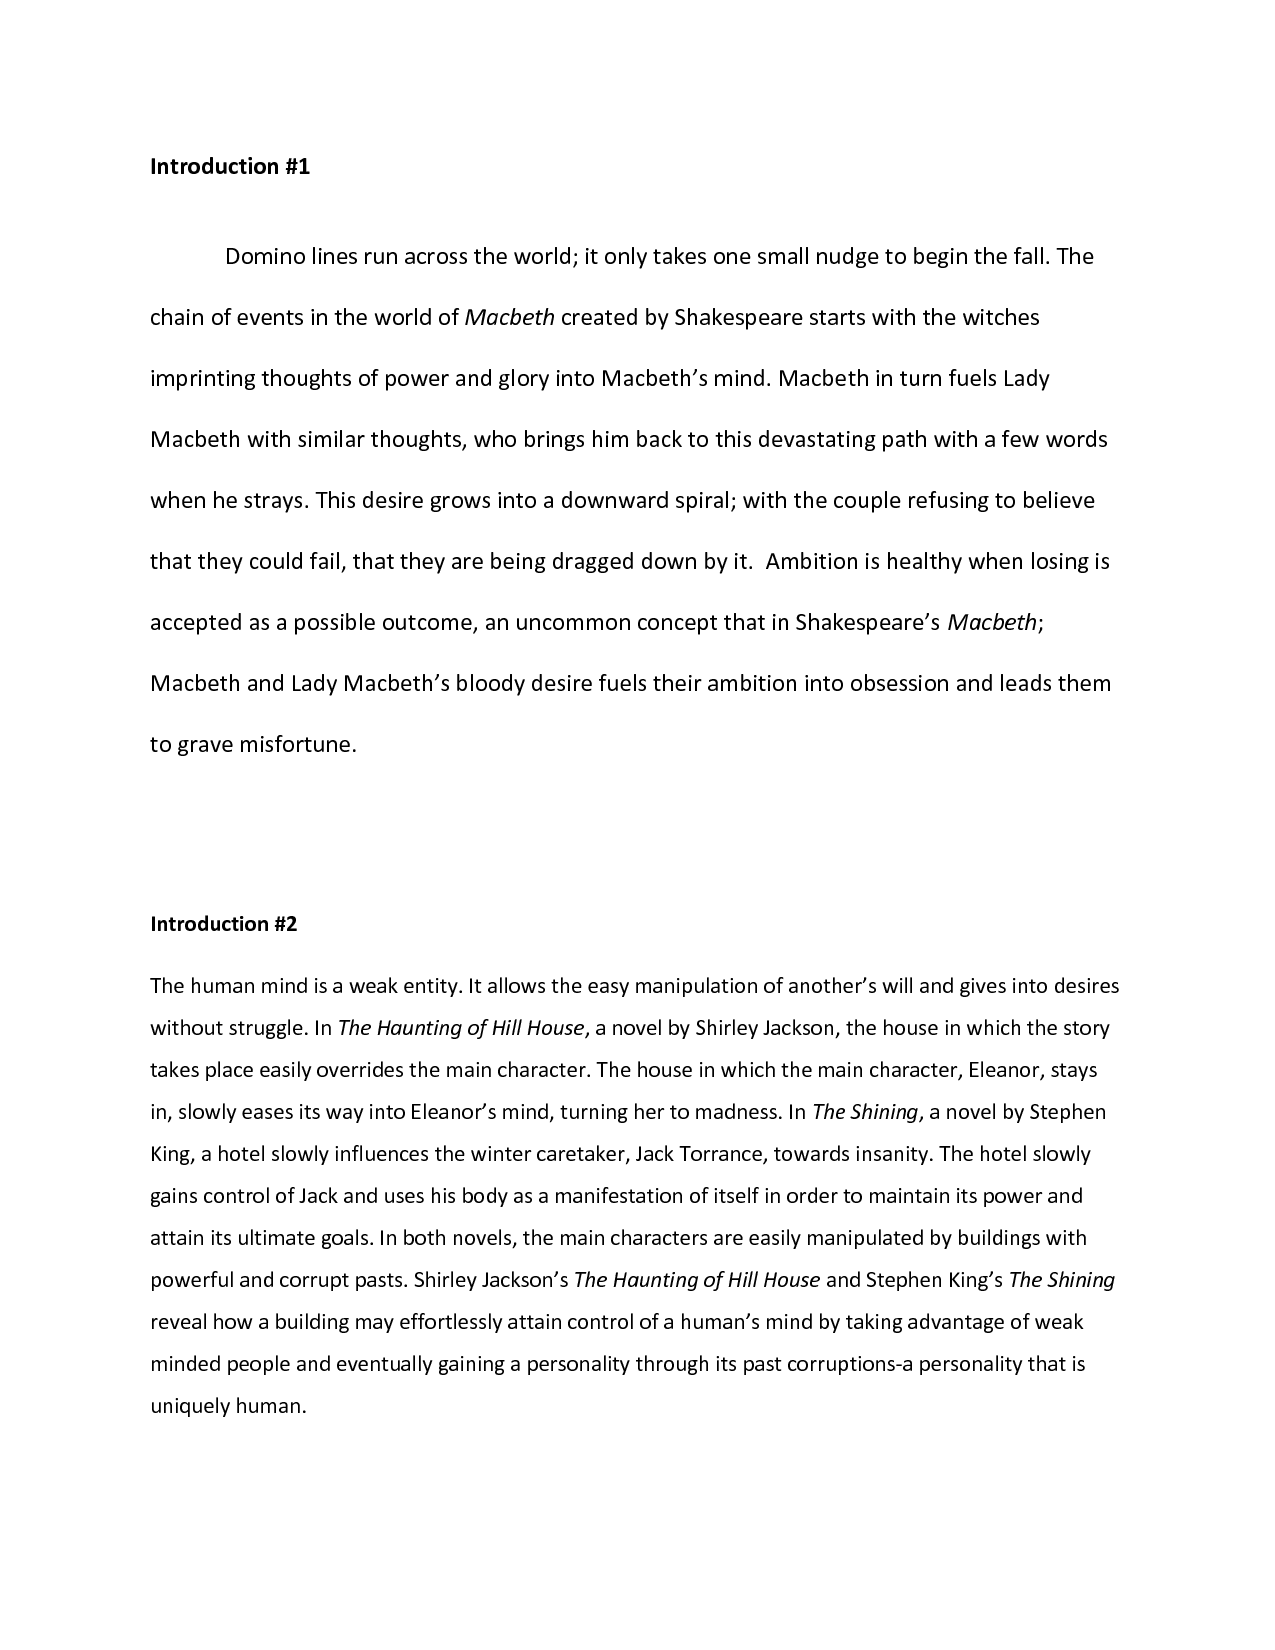 005 Good Essay Beginnings Examples Of Introduction Perfect Resume Middle School Example Coles Thecolossus About Yourself University Pdf Compare And Contrast High Opening Staggering Words Intros Full